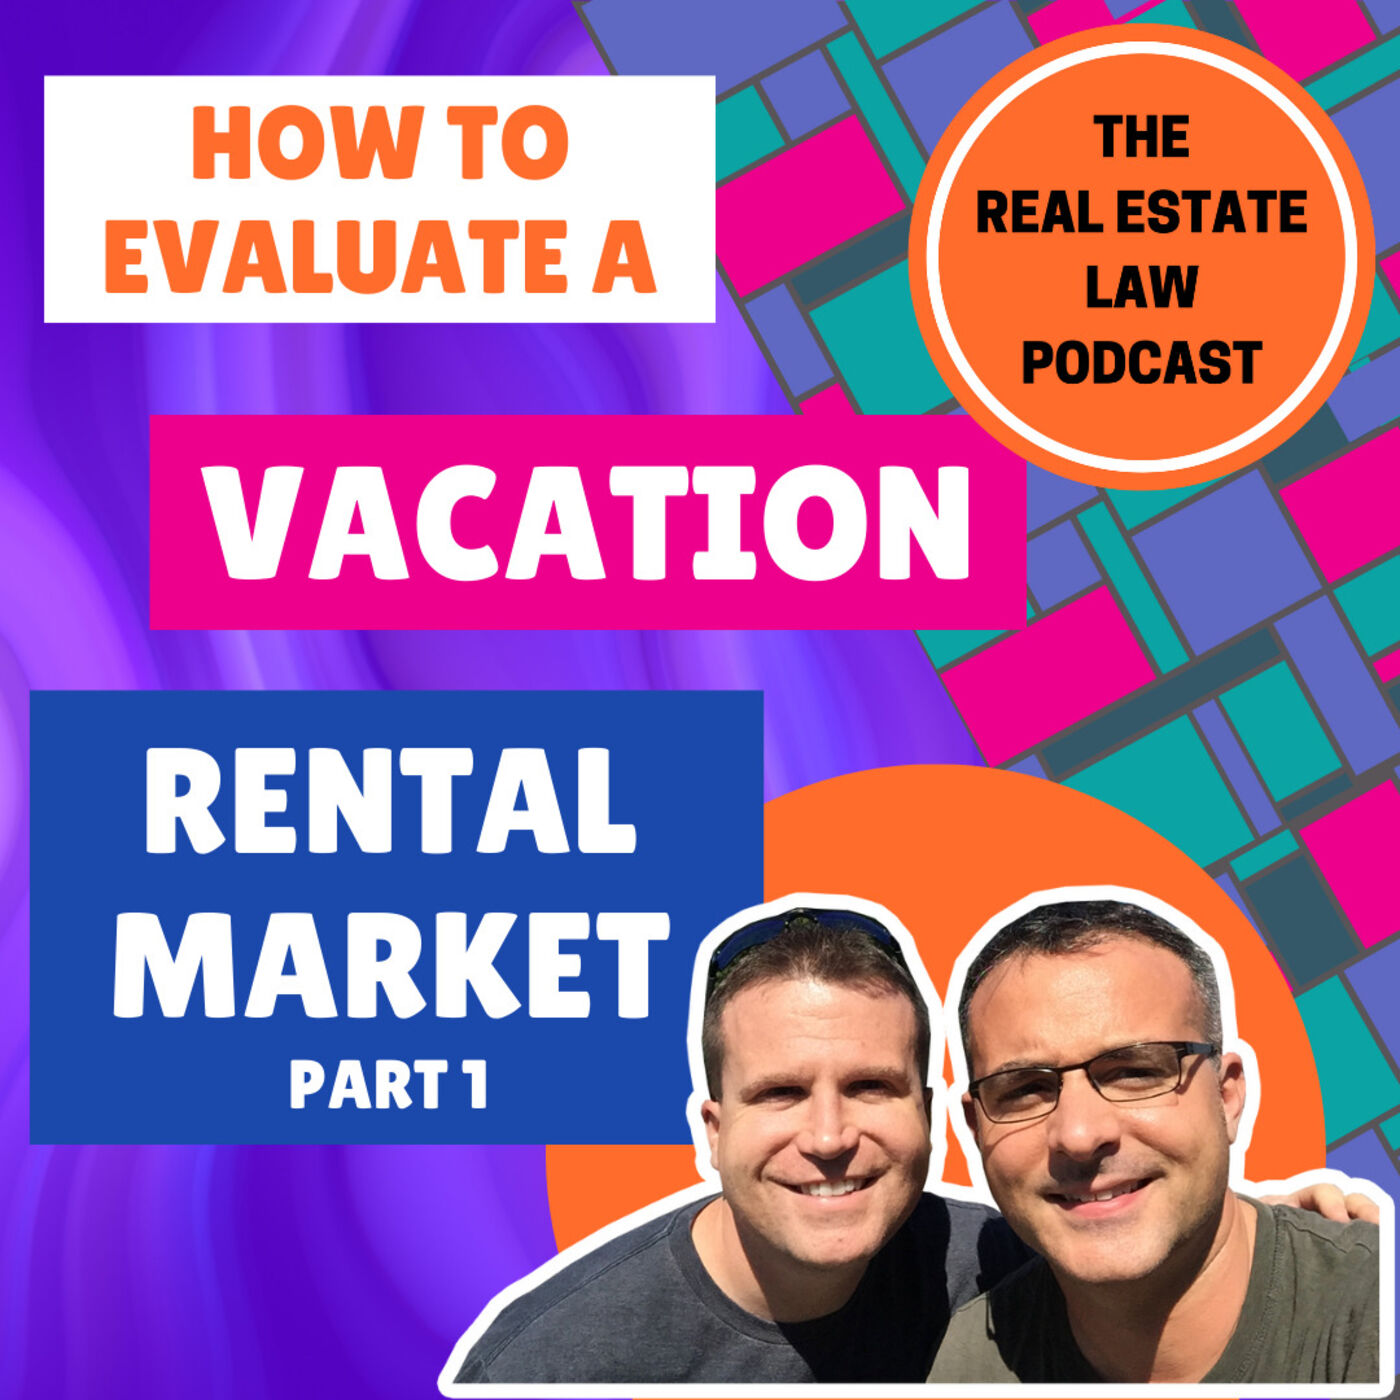 20 - How to Evaluate a Vacation Rental Market, Part 1 of 2